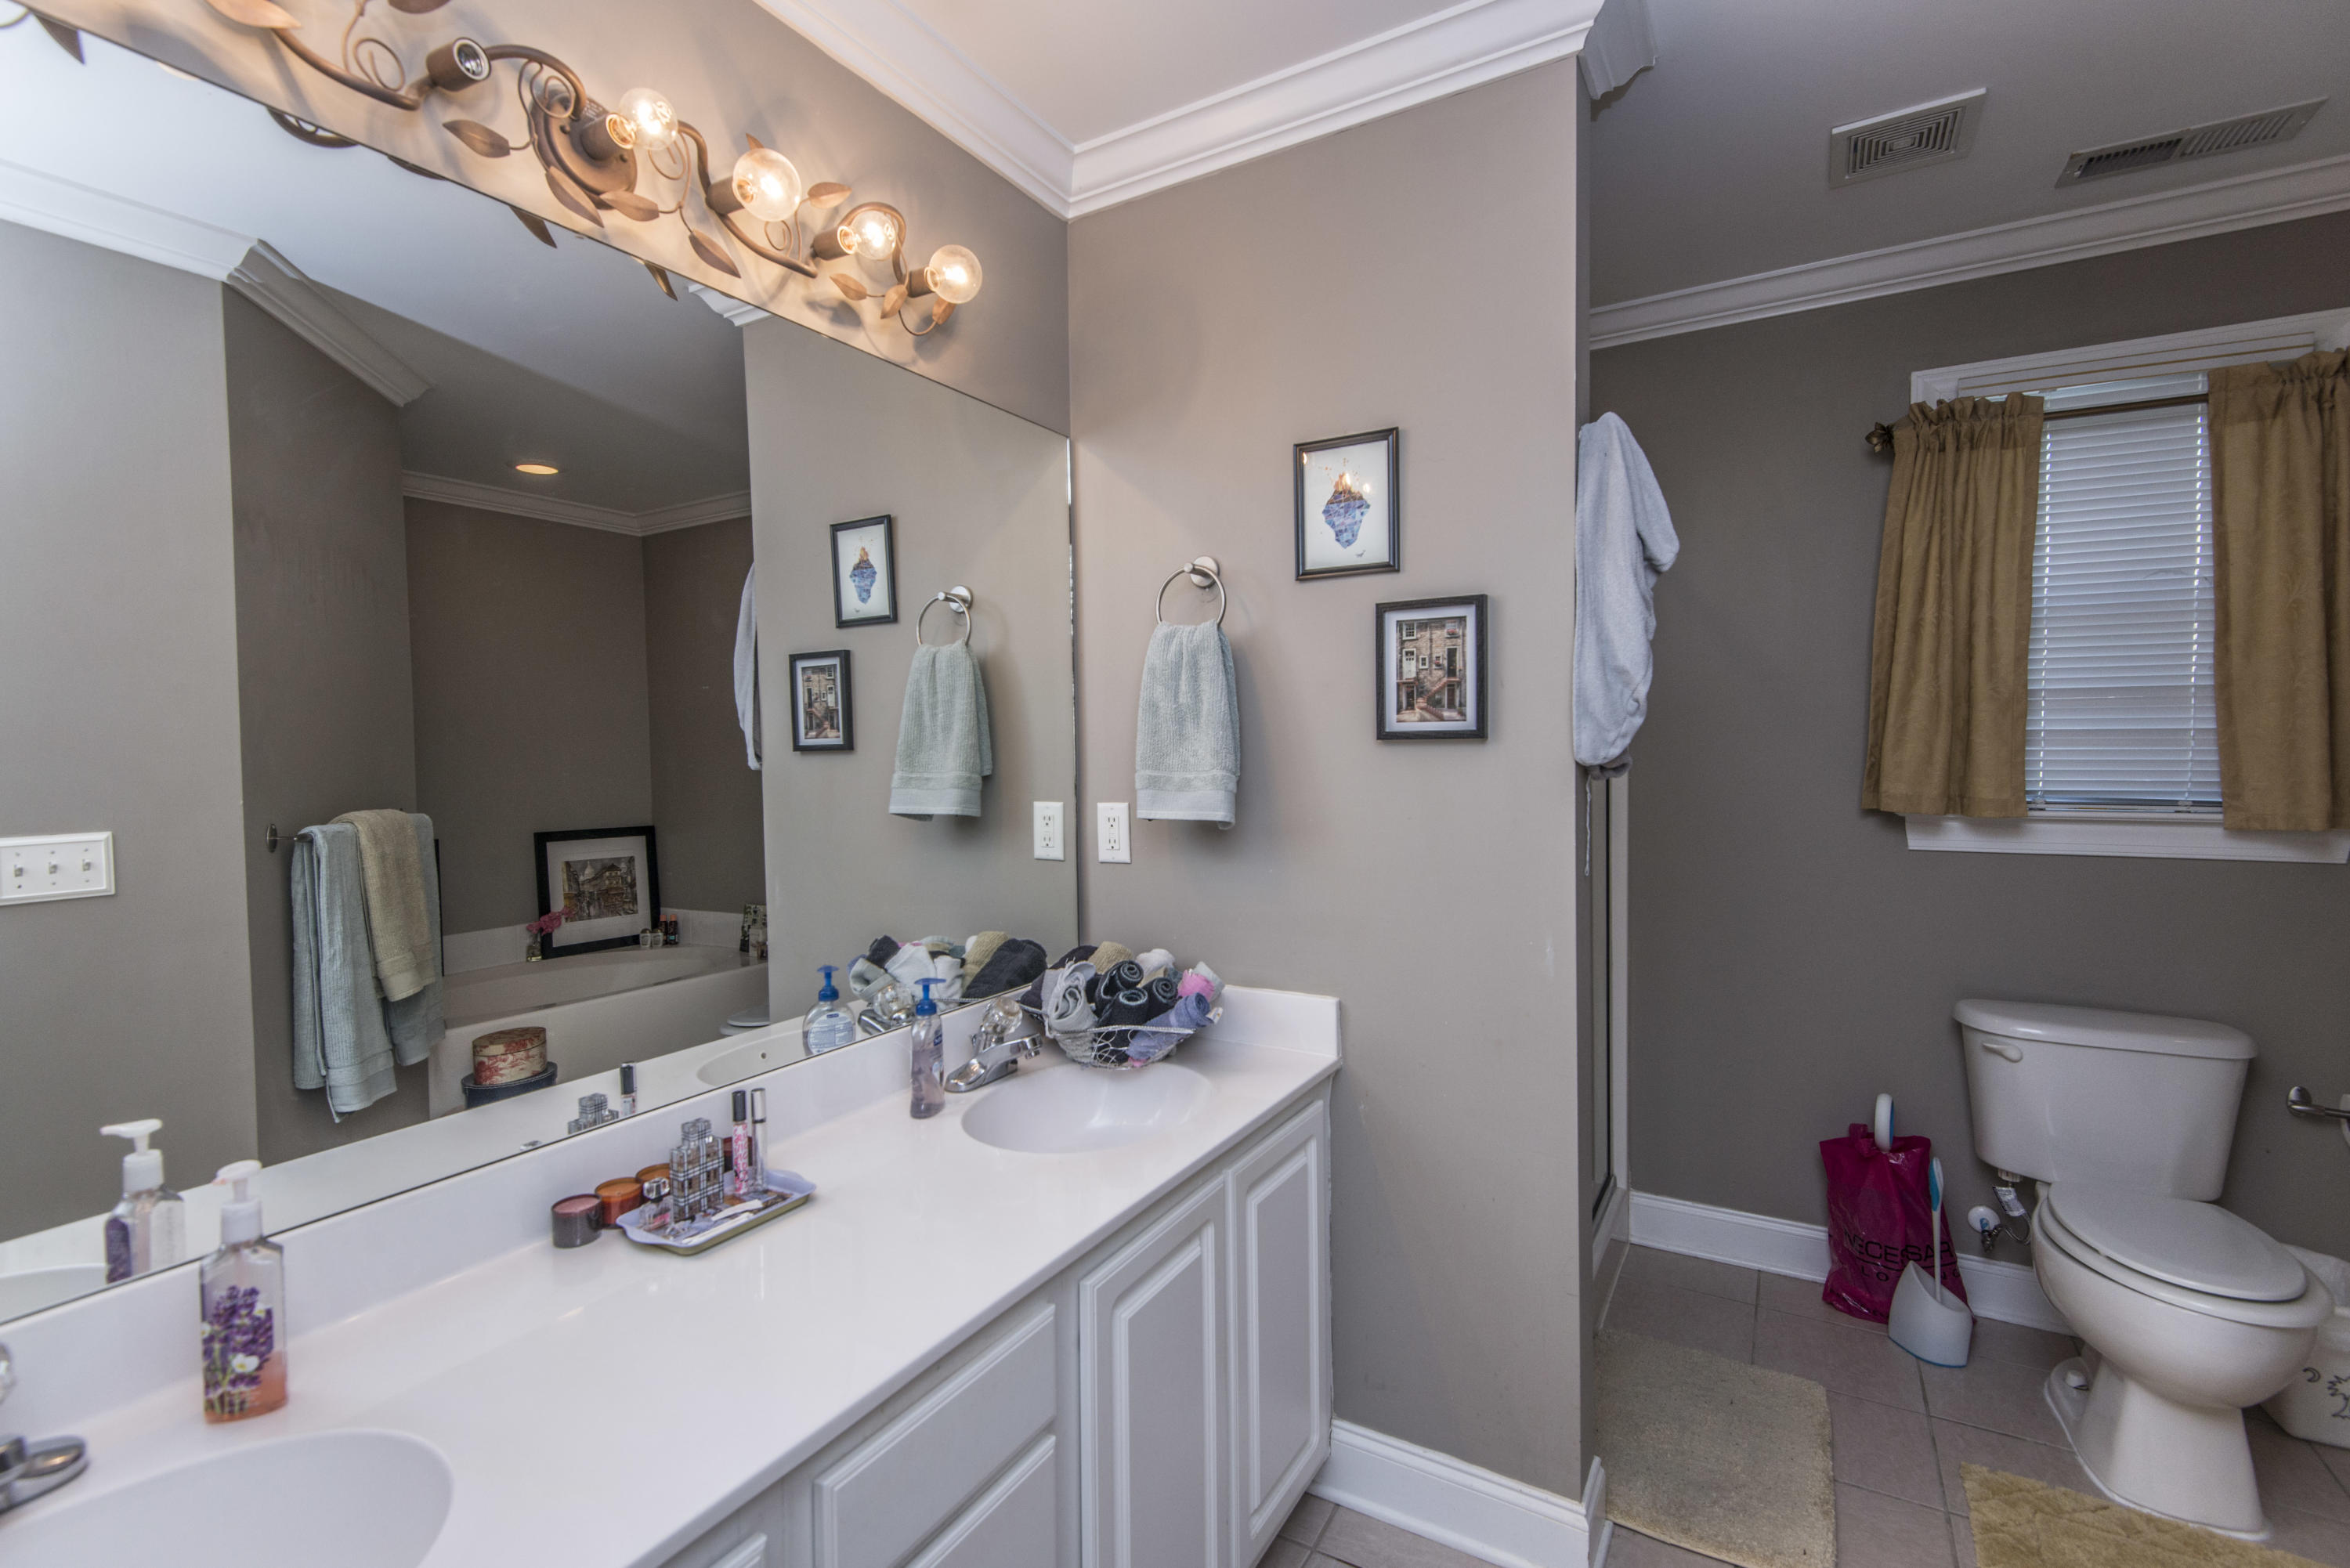 The Reserve at Wando East Homes For Sale - 1675 Lauda, Mount Pleasant, SC - 15